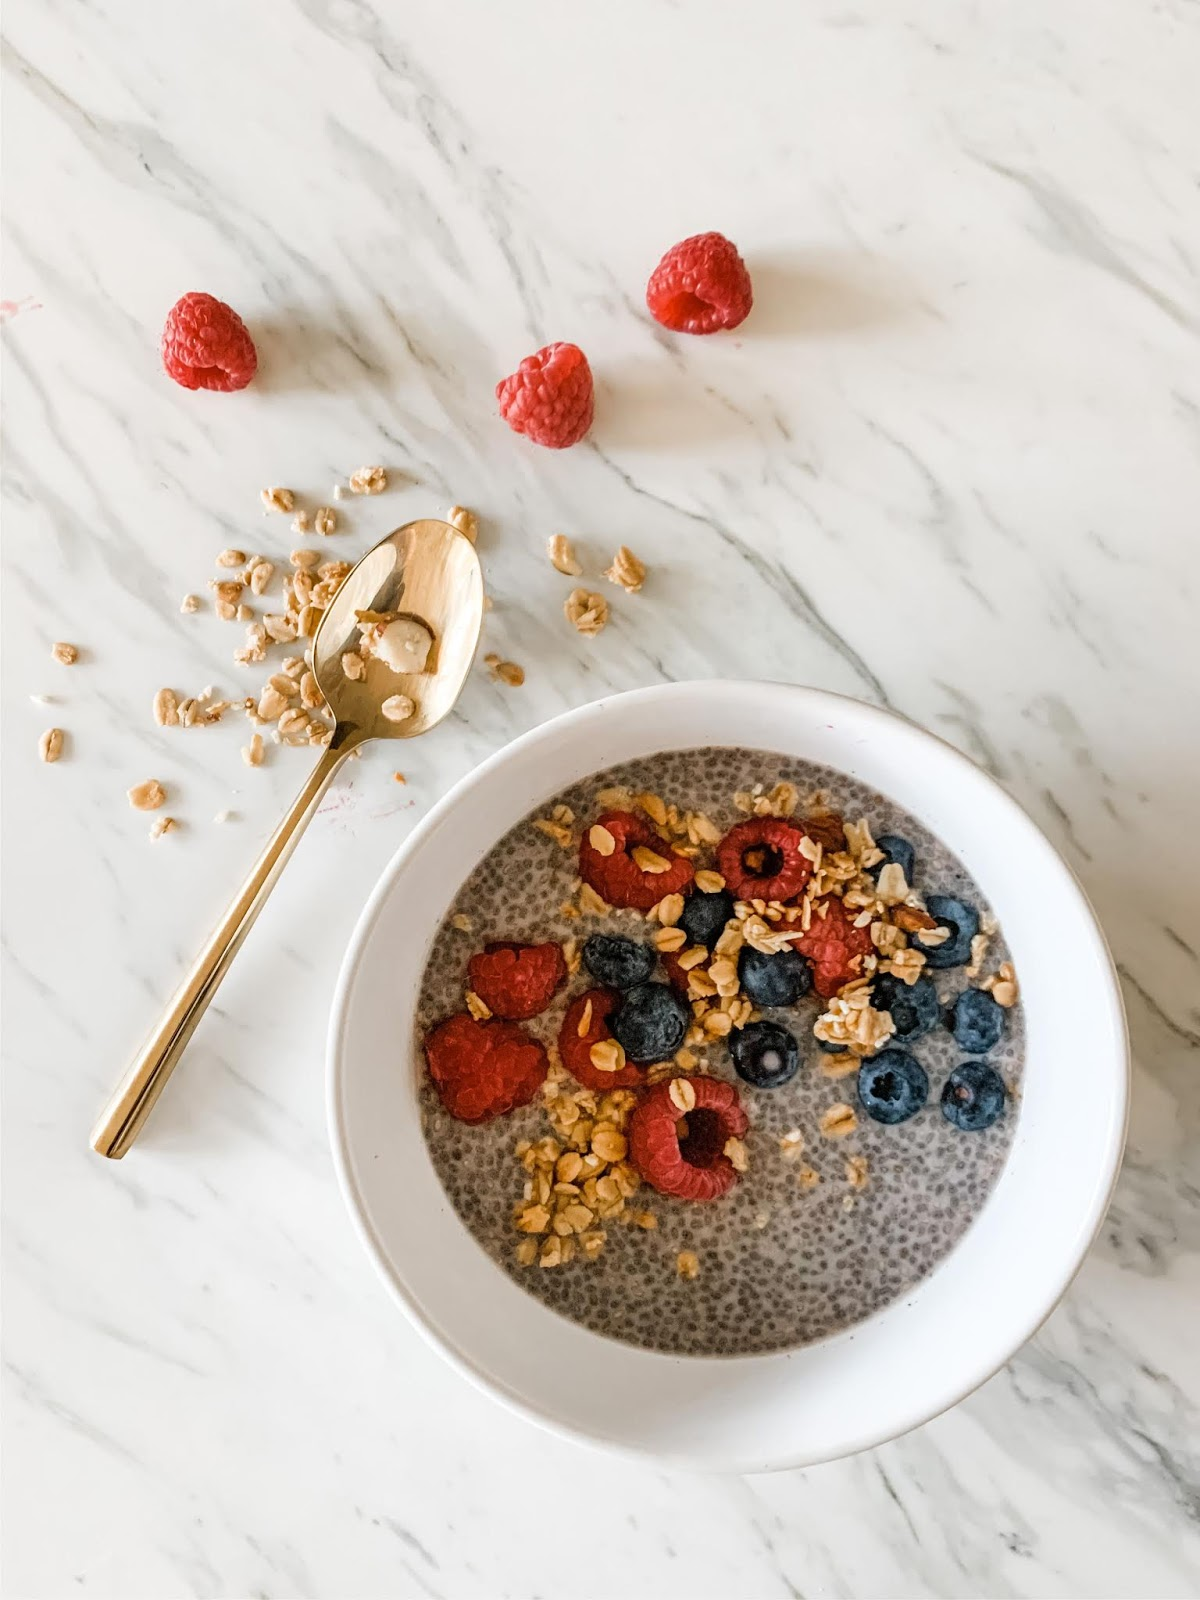 Chia seed pudding flatlay